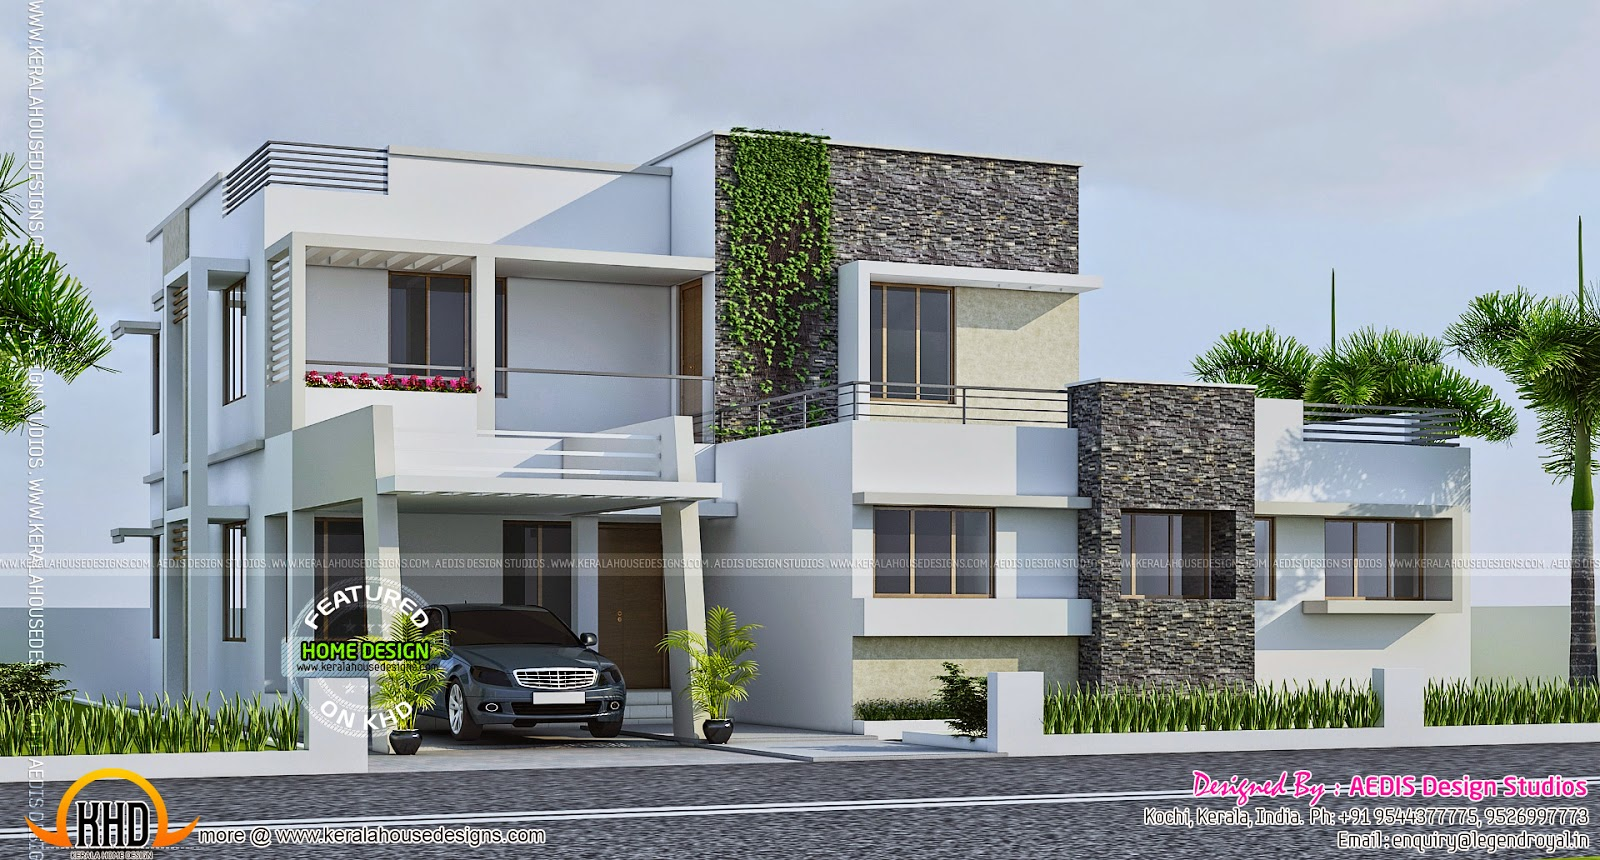 Front Elevation Of 240 Yards House : Yard home design contemporary square yards house